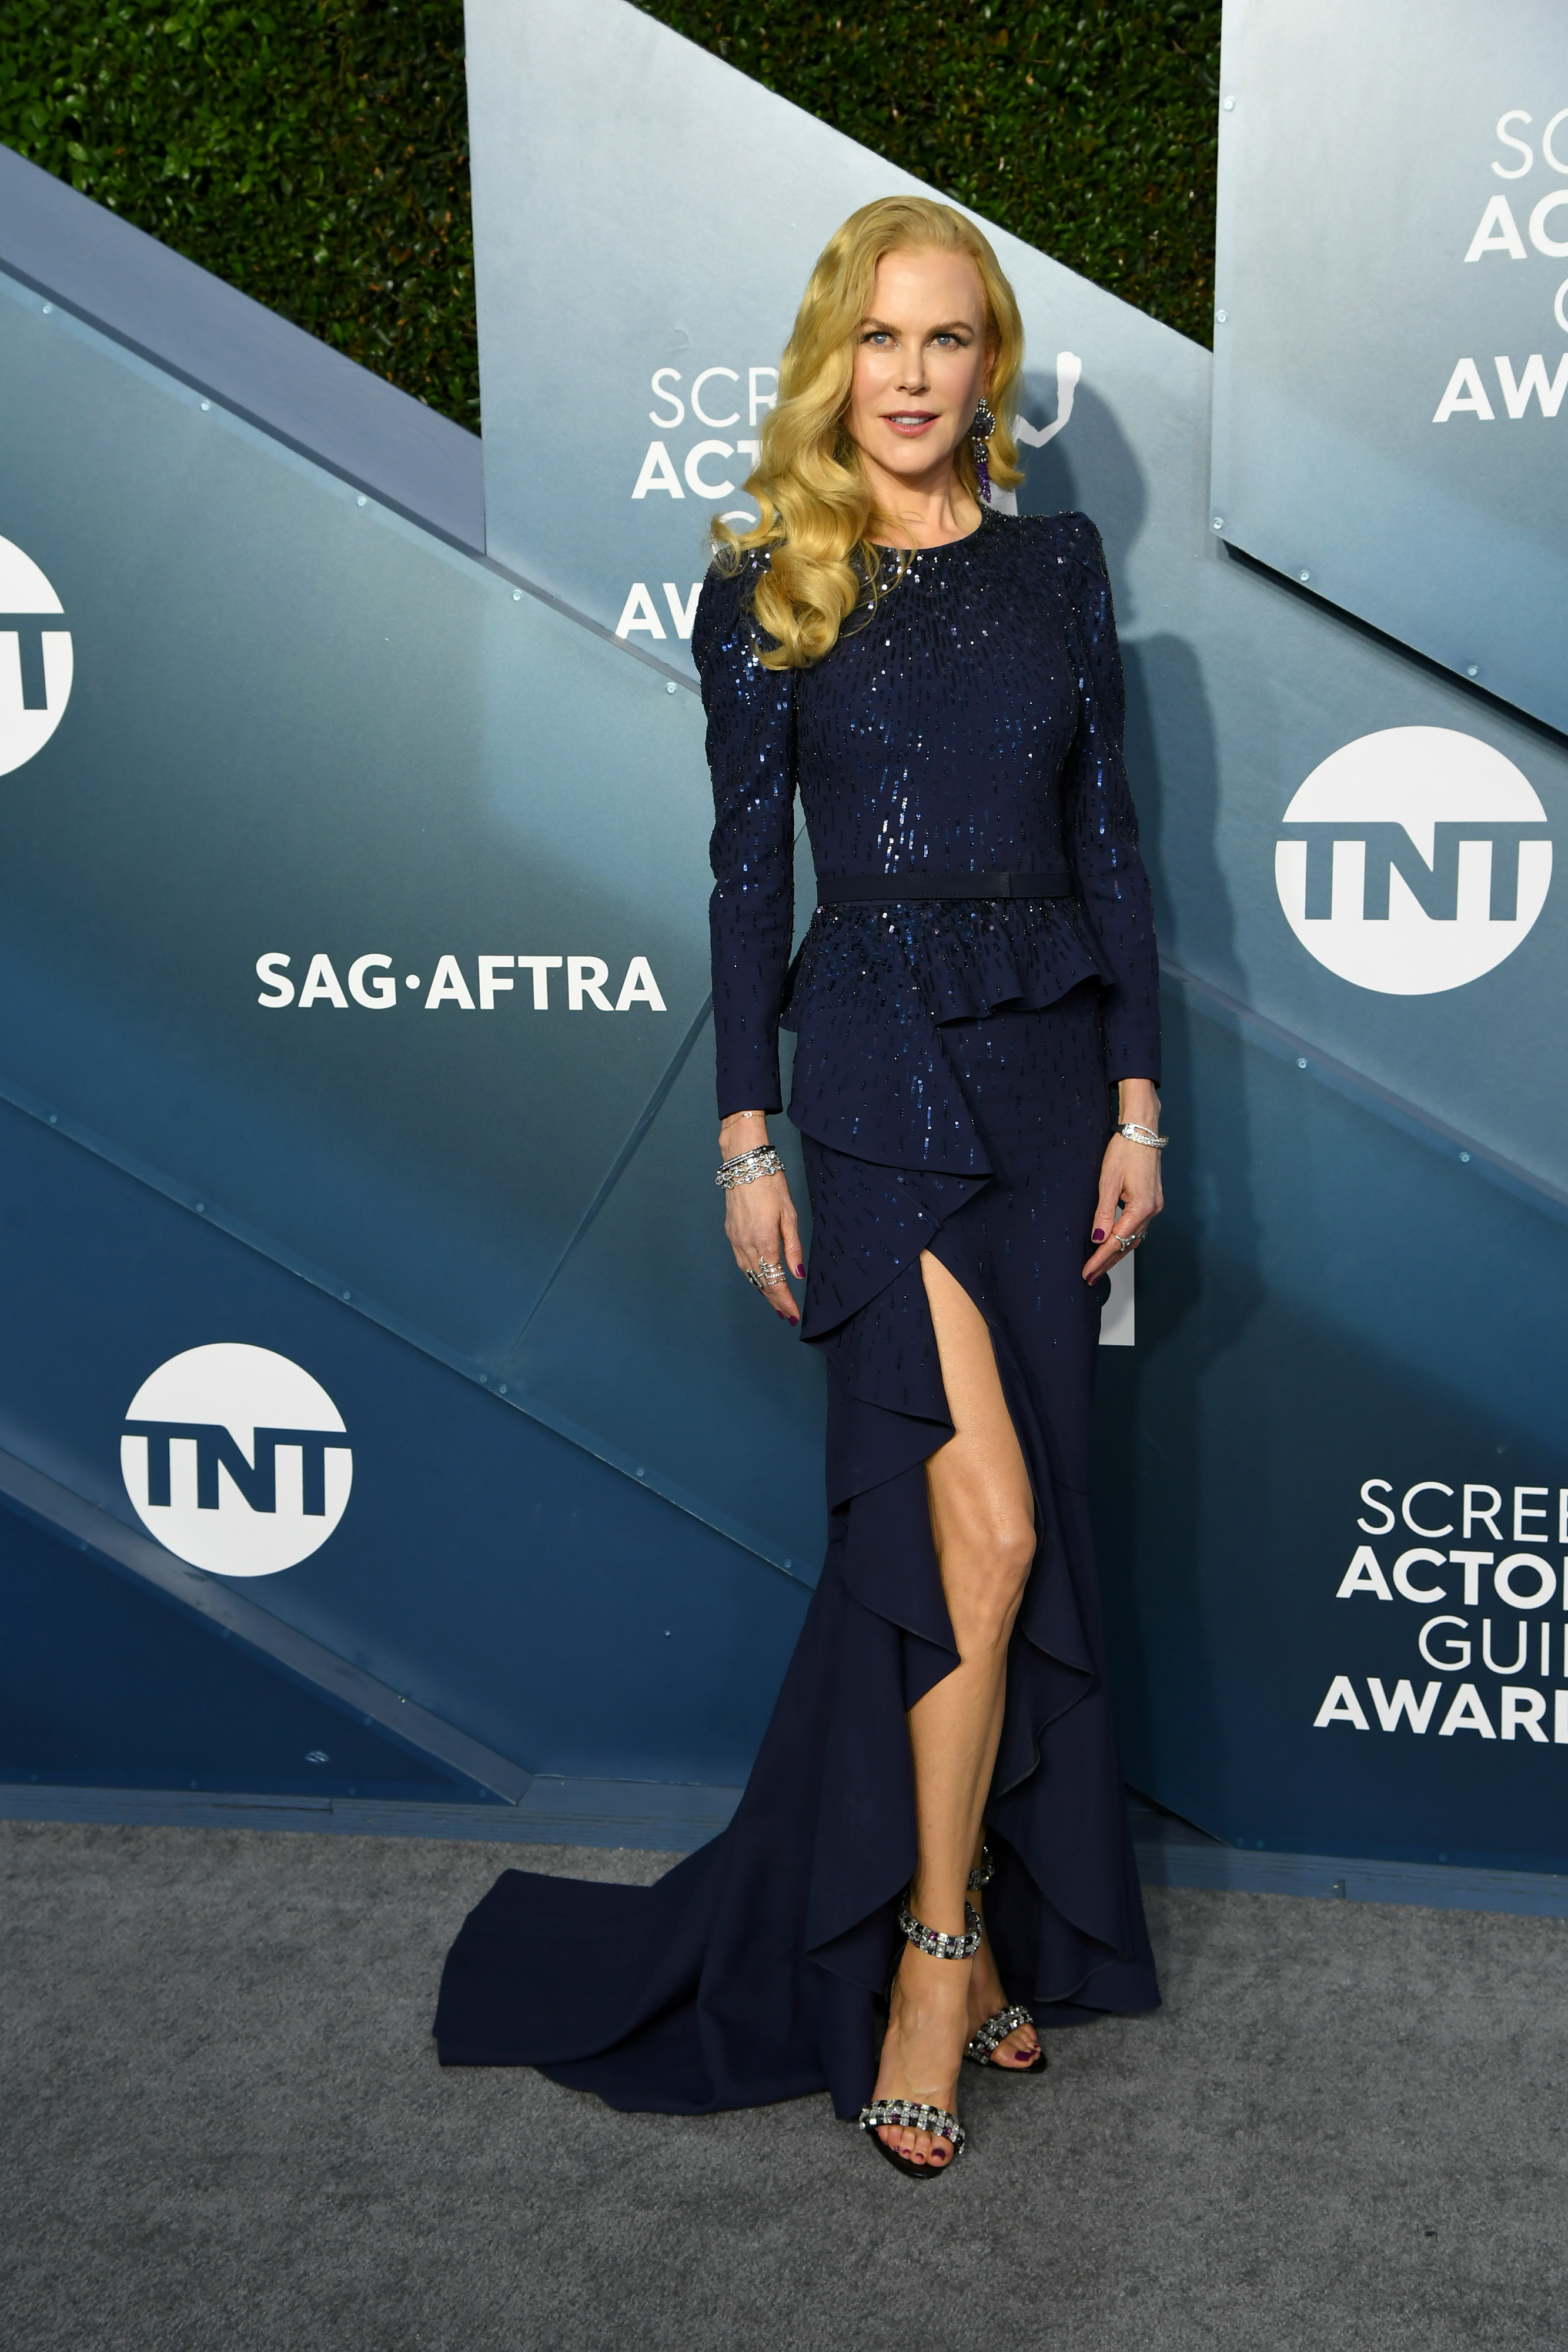 LOS ANGELES, CALIFORNIA - JANUARY 19: Nicole Kidman attends the 26th Annual Screen ActorsGuild Awards at The Shrine Auditorium on January 19, 2020 in Los Angeles, California. (Photo by Jeff Kravitz/FilmMagic)